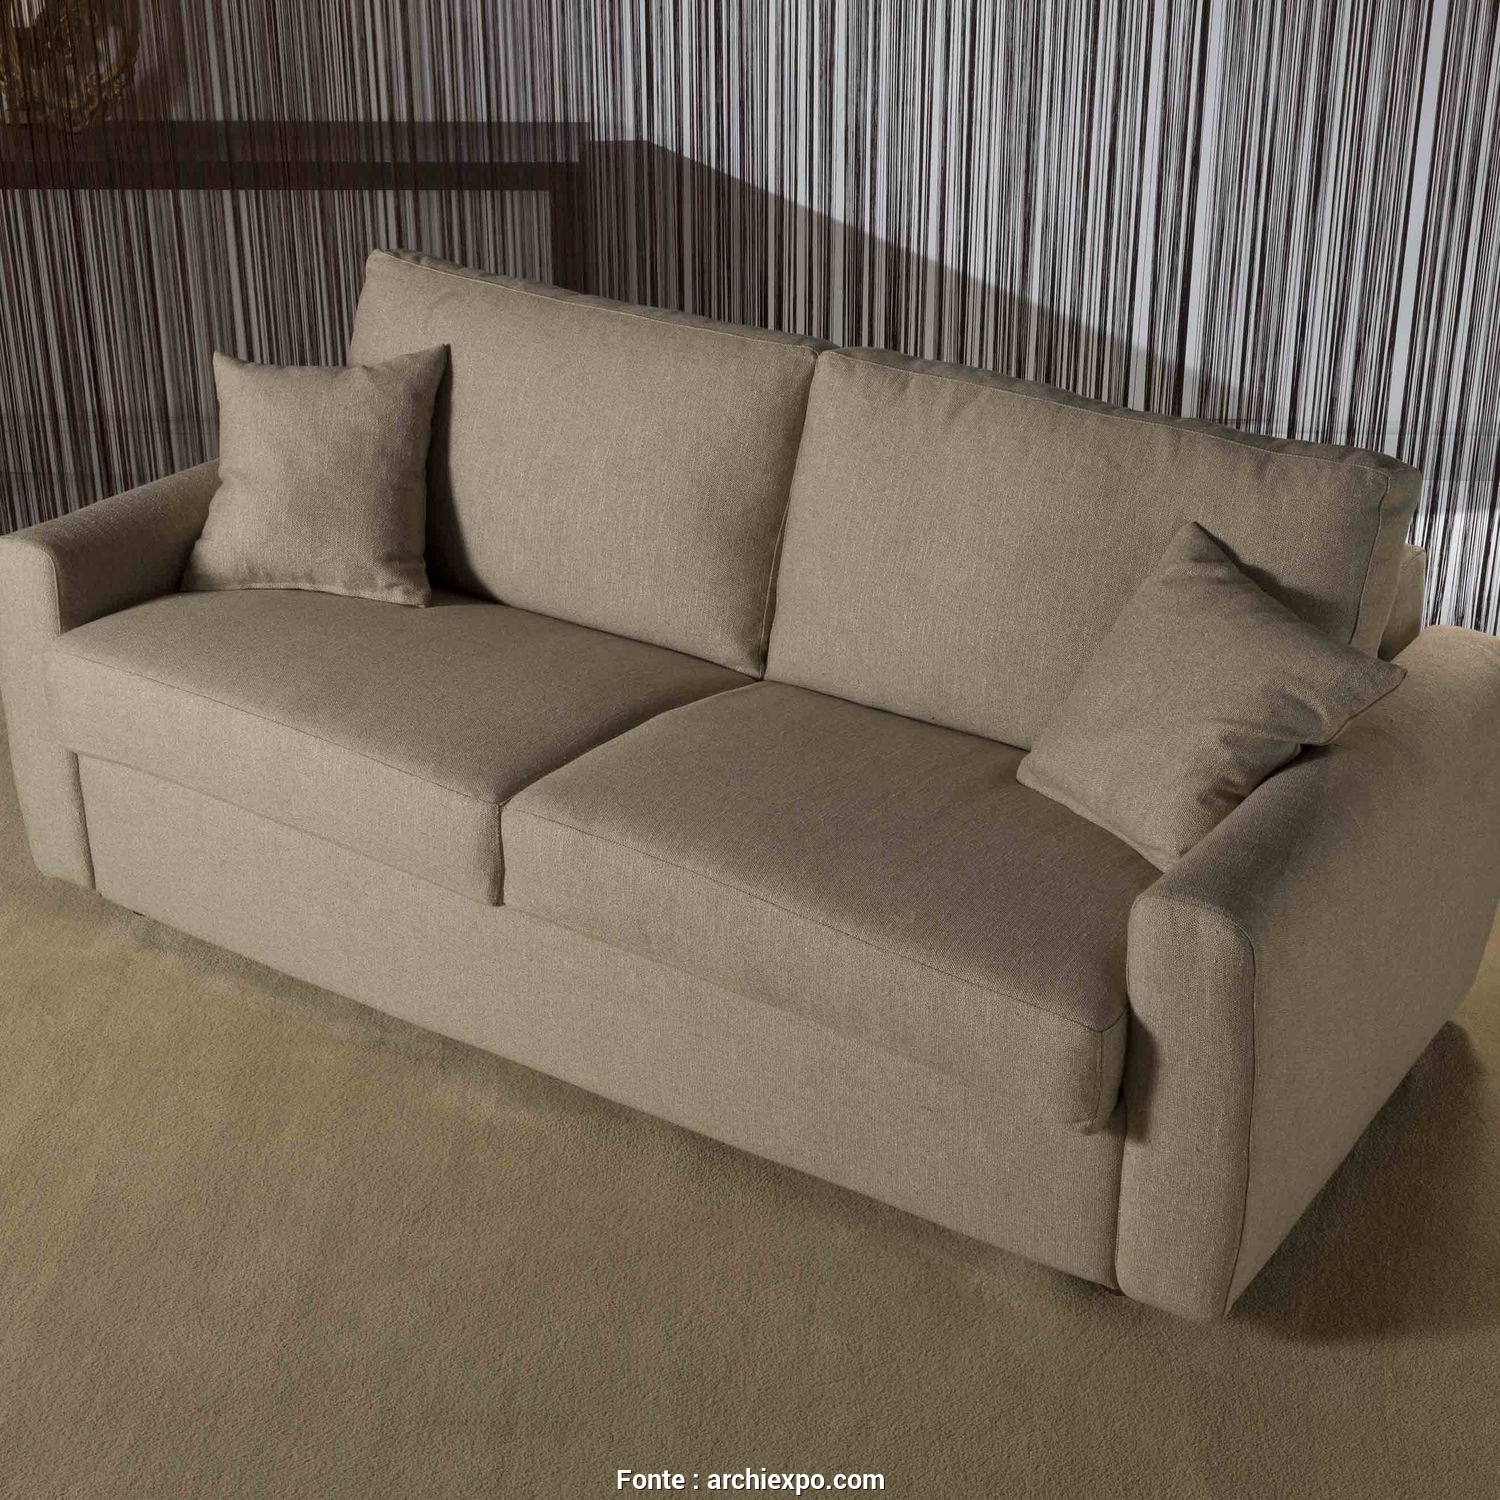 Divani Santambrogio Lissone, Bello Sofa, / Contemporary / Fabric / 3-Seater FEDERICA Divani Santambrogio